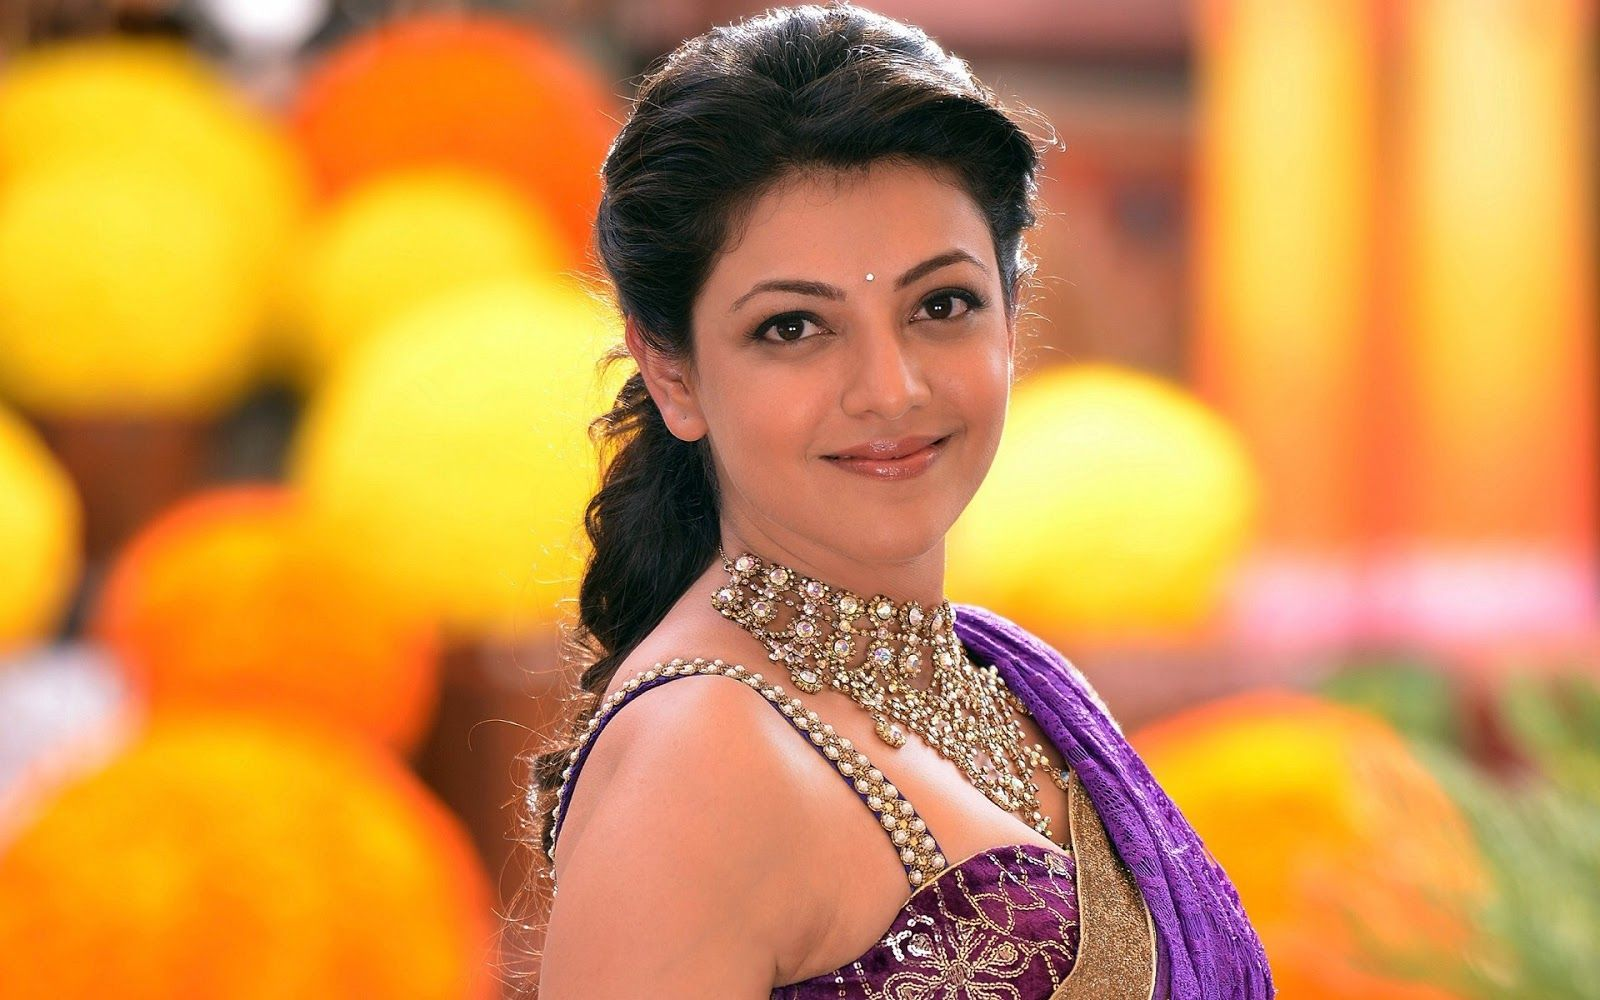 South Indian Actress Wallpapers In Hd Kajal Agarwal Latest Beautiful Indian Actress Actress Wallpaper Actresses